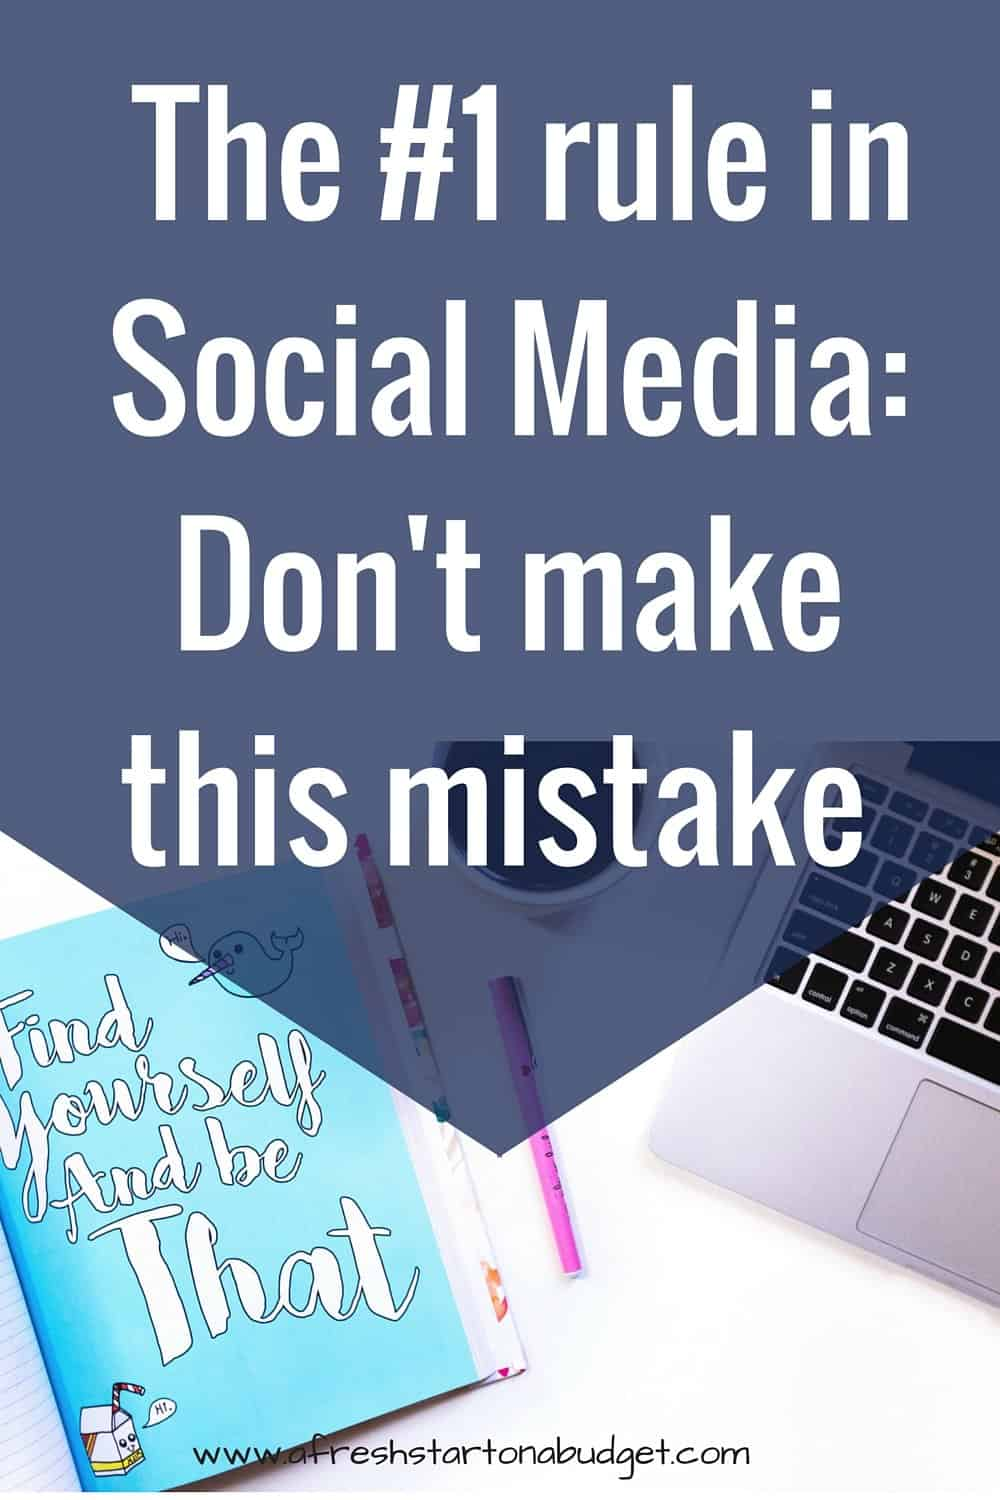 As a blogger or entrepreneur, social media is so important to growing your traffic and brand. Don't make this social media mistake, though. Click through to read and check it out. I'd love to know your thoughts, so leave a comment